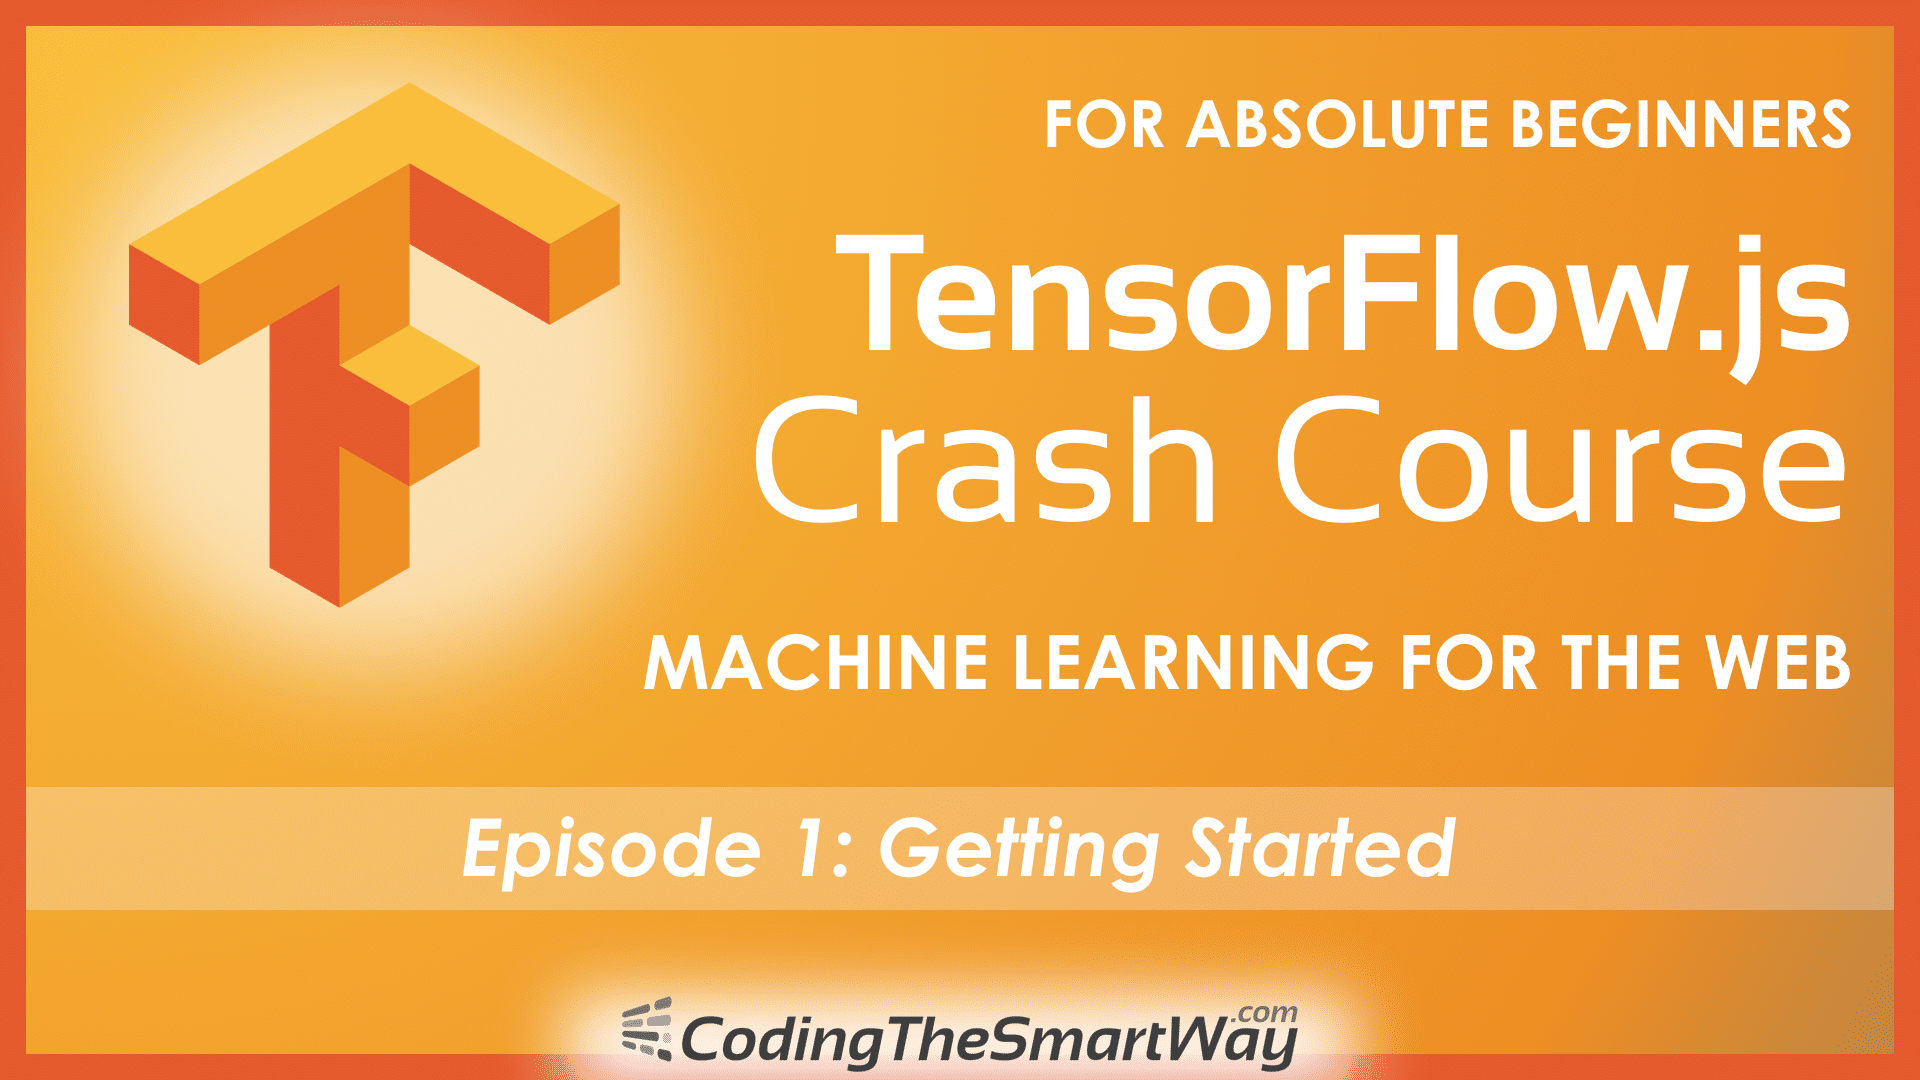 TensorFlow js Crash Course - Machine Learning For The Web